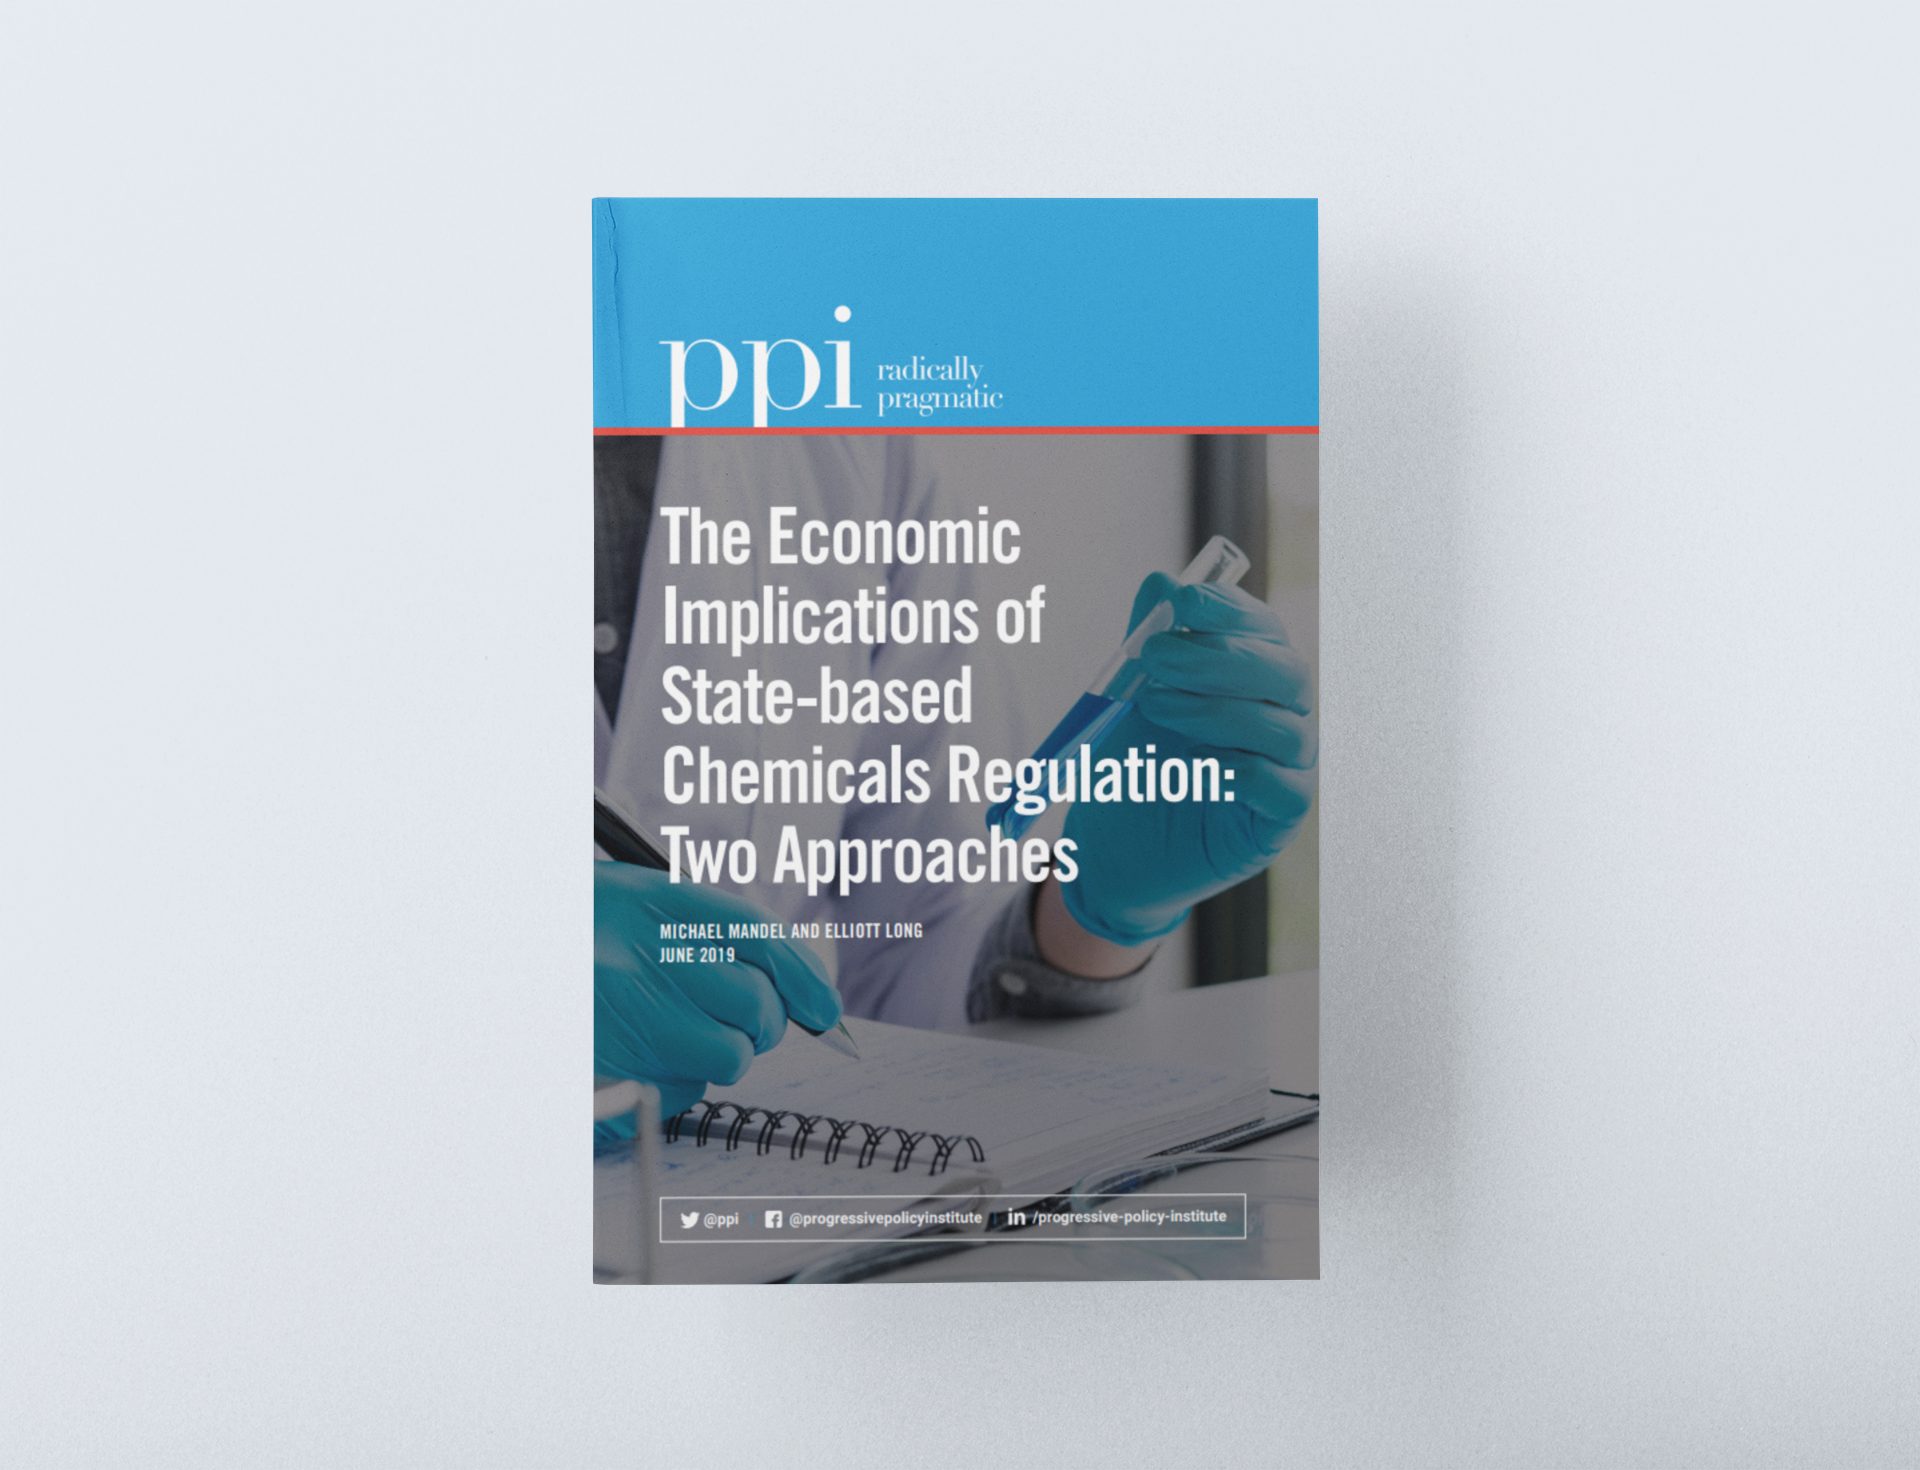 The Economic Implications of State-based Chemicals Regulation: Two Approaches